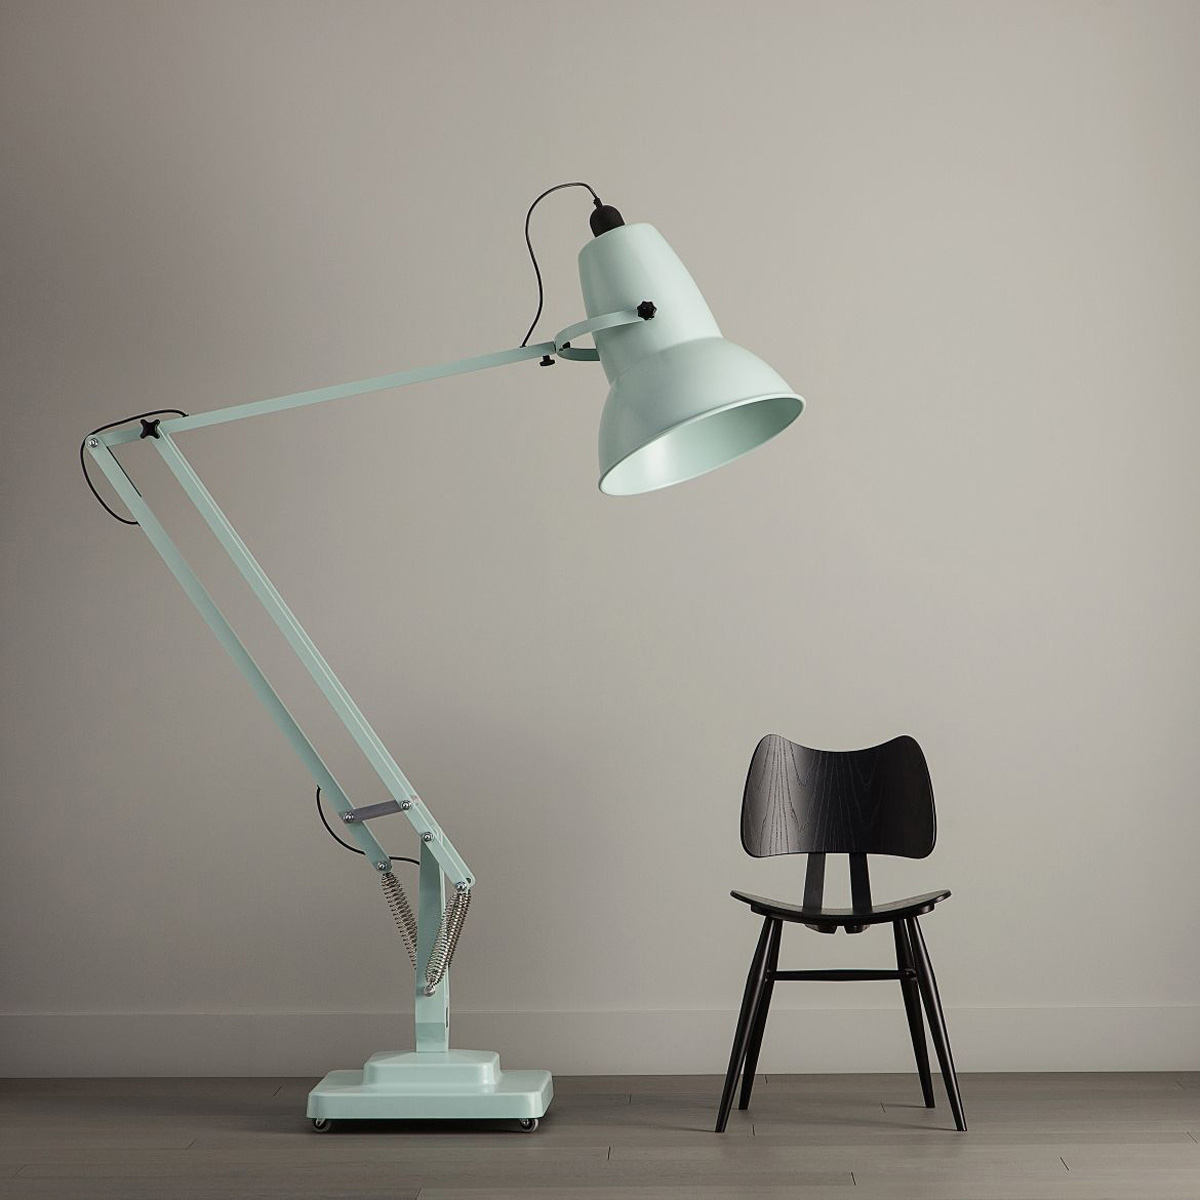 Anglepoise Lamp Gigantic Anglepoise Original 1227 Floor Lamp The Green Head